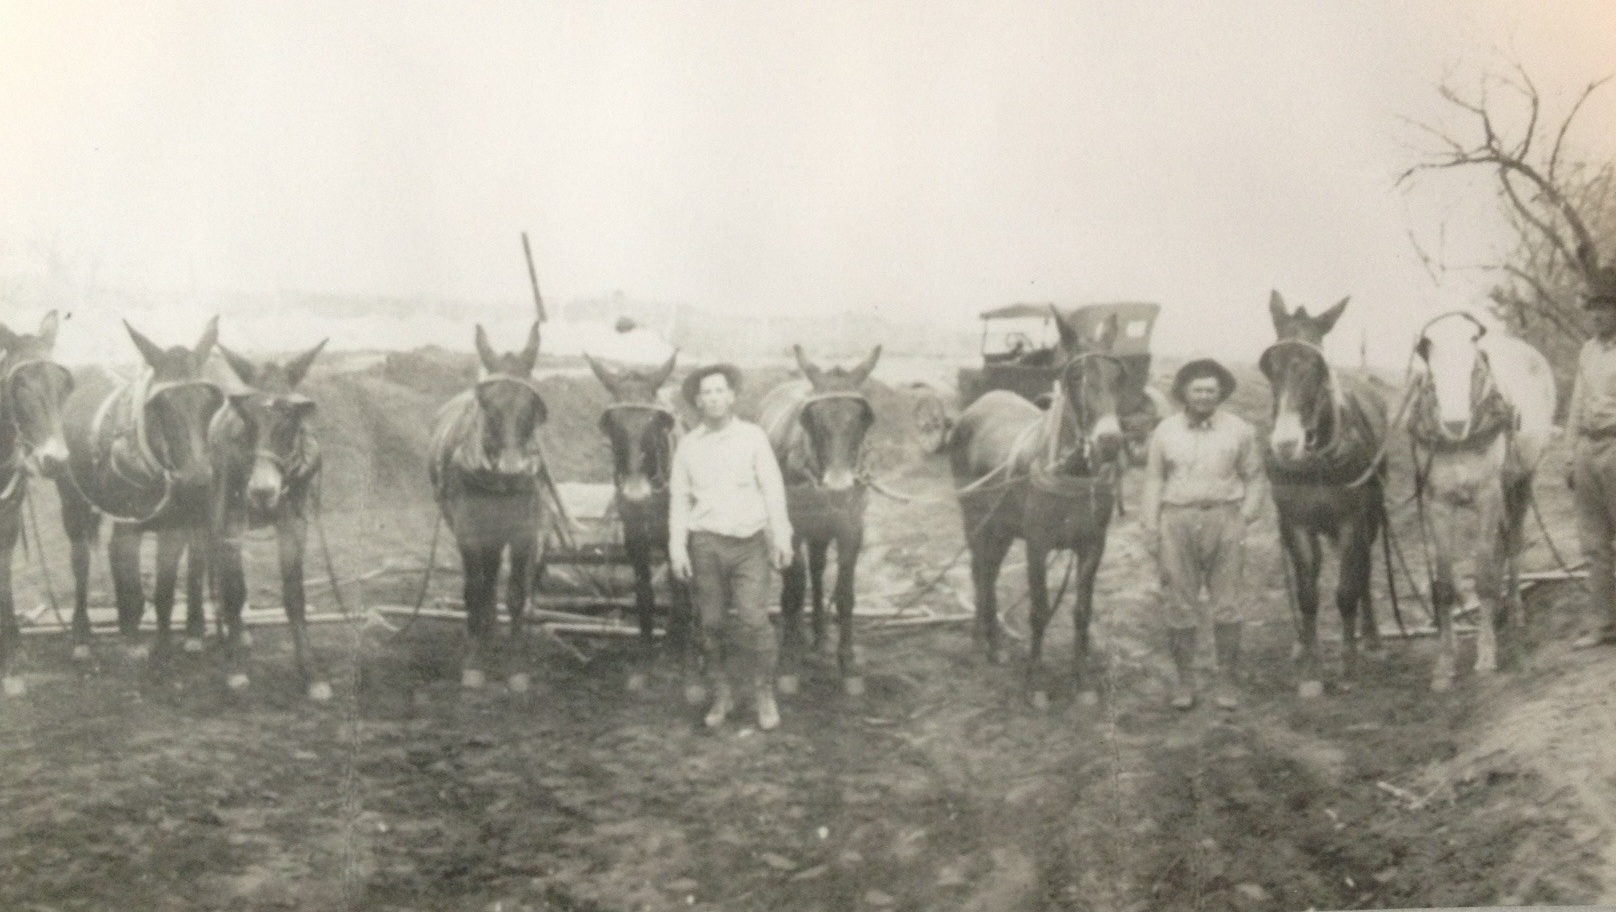 Local Rancher, Cecil Ruby, shown  in the center of the photo with his mule team/road construction company, around 1930's.